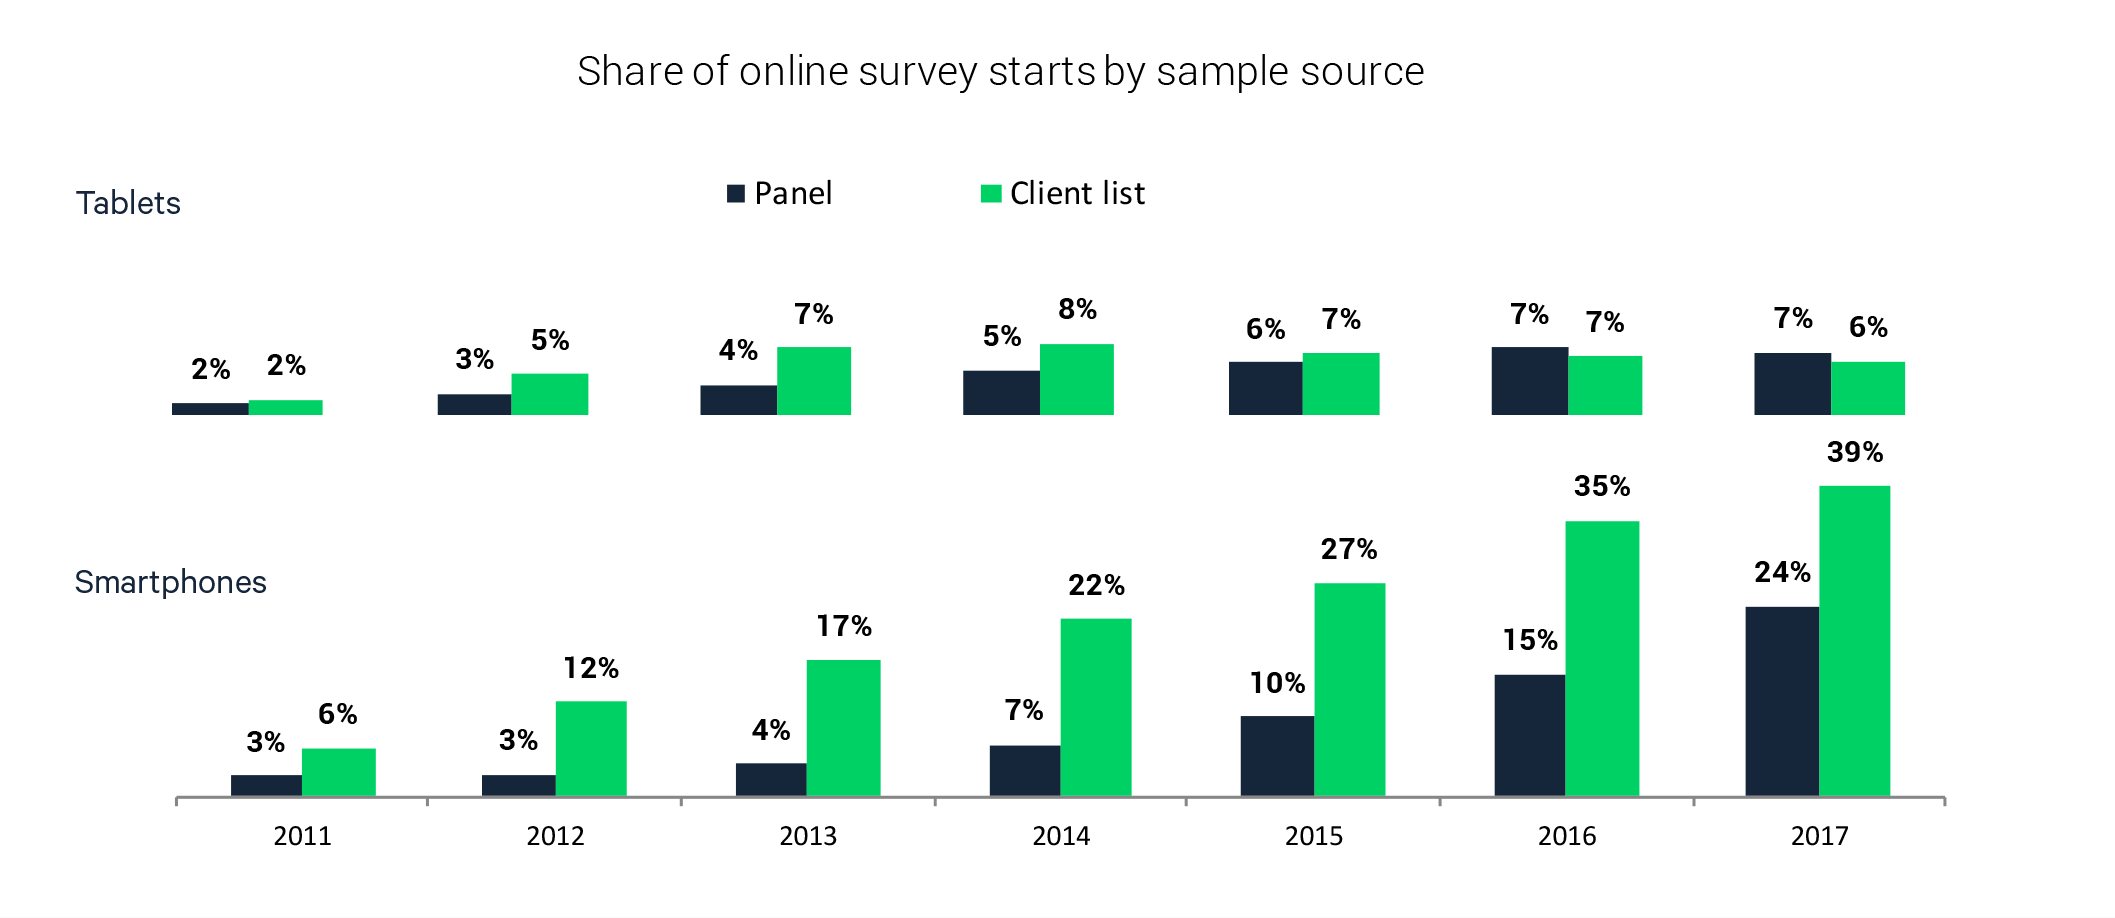 Mobile Trends: Percentage of survey starts by device and sample type.